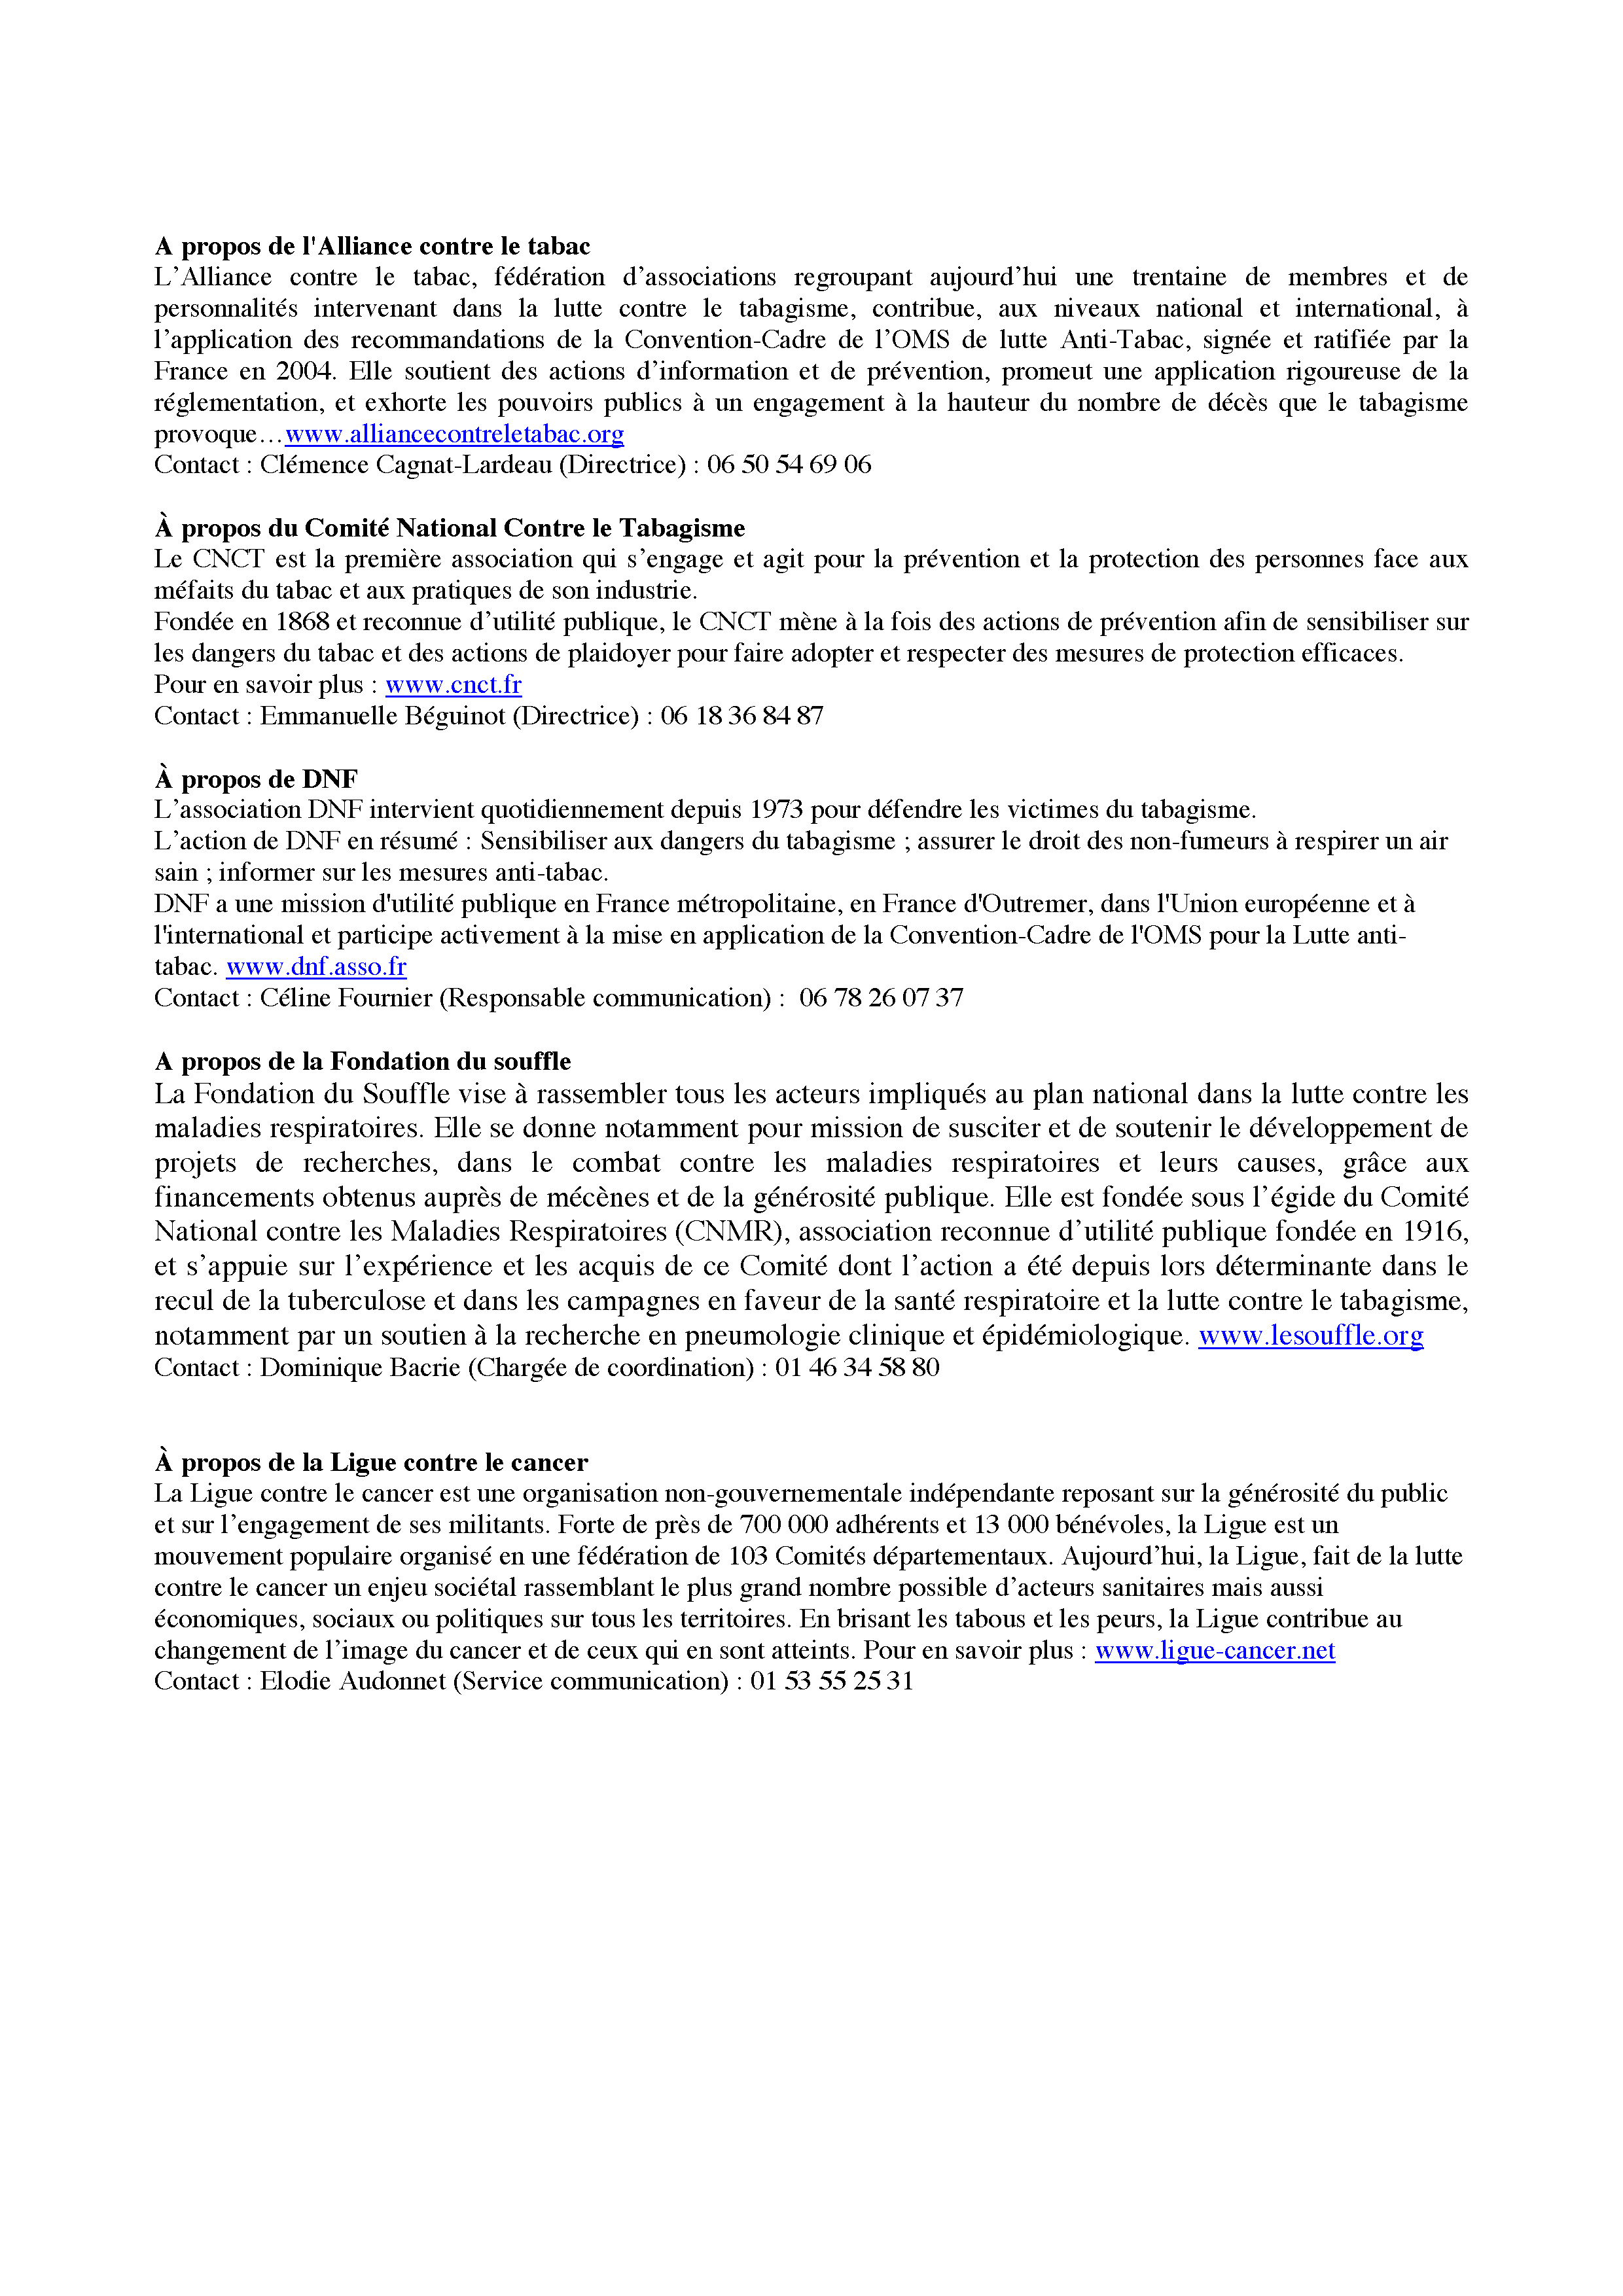 Alliance-CP_revision-de-la-directive-europeenne-tabac_08oct2013_Page_2.jpg